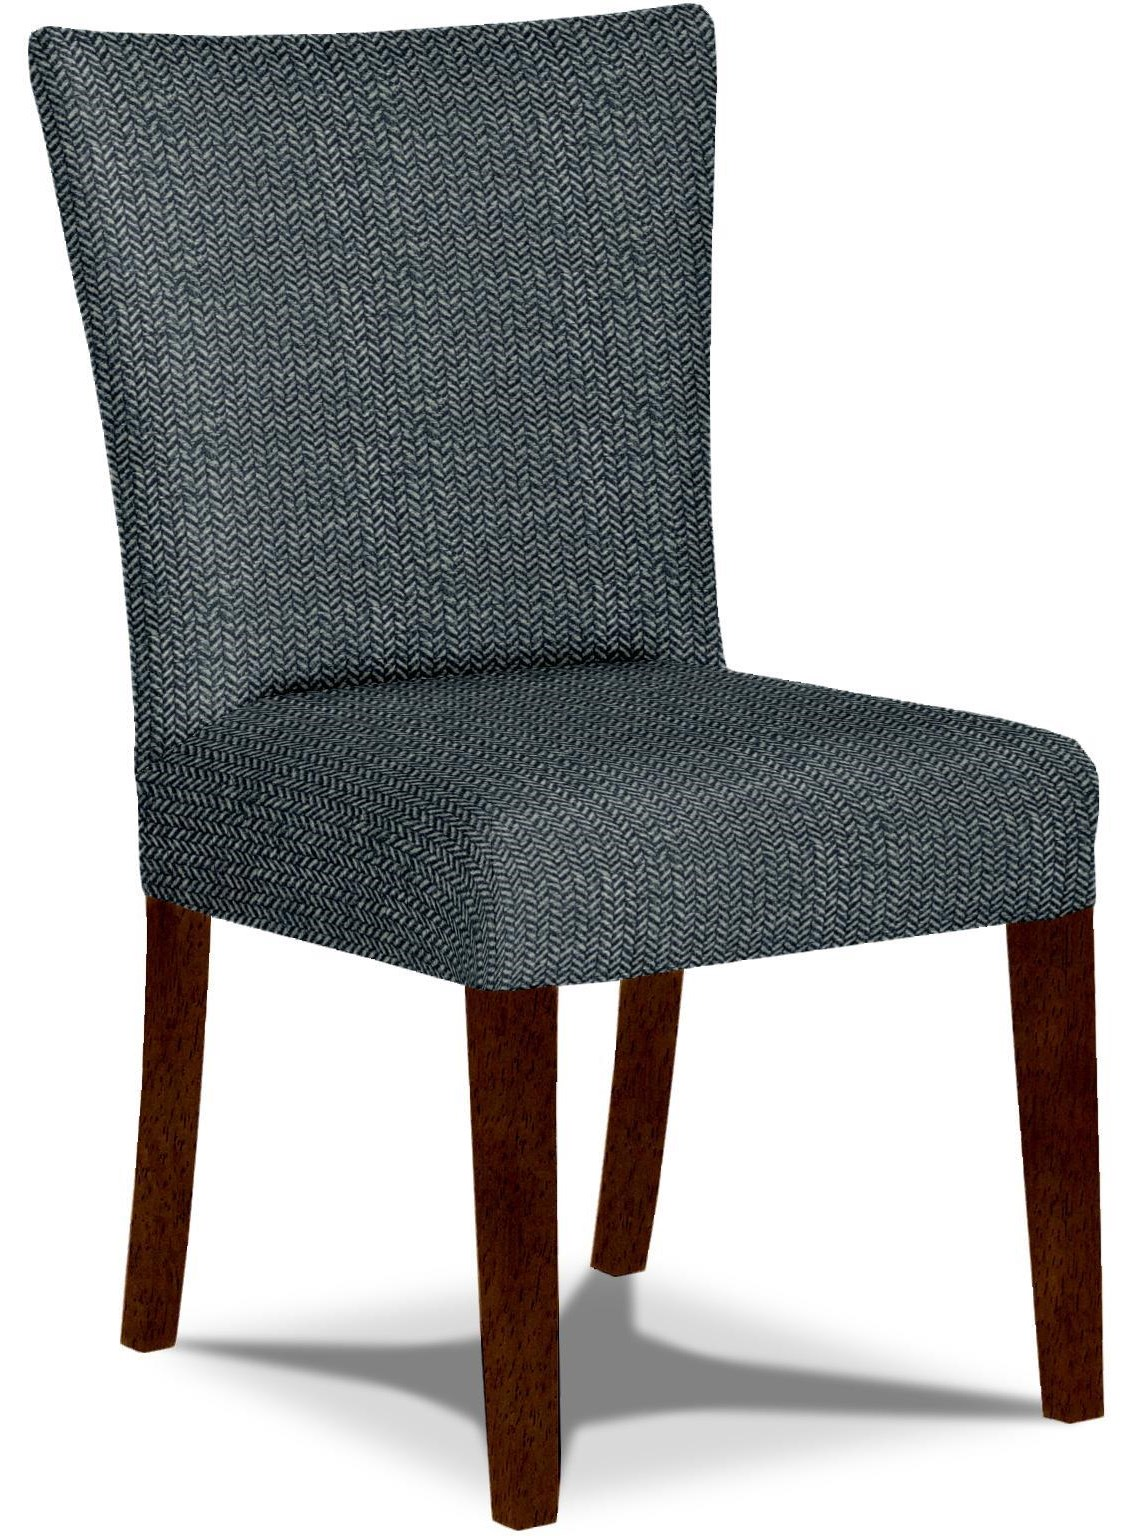 Jazla Pair of Dining Side Chairs by Best Home Furnishings at Crowley Furniture & Mattress